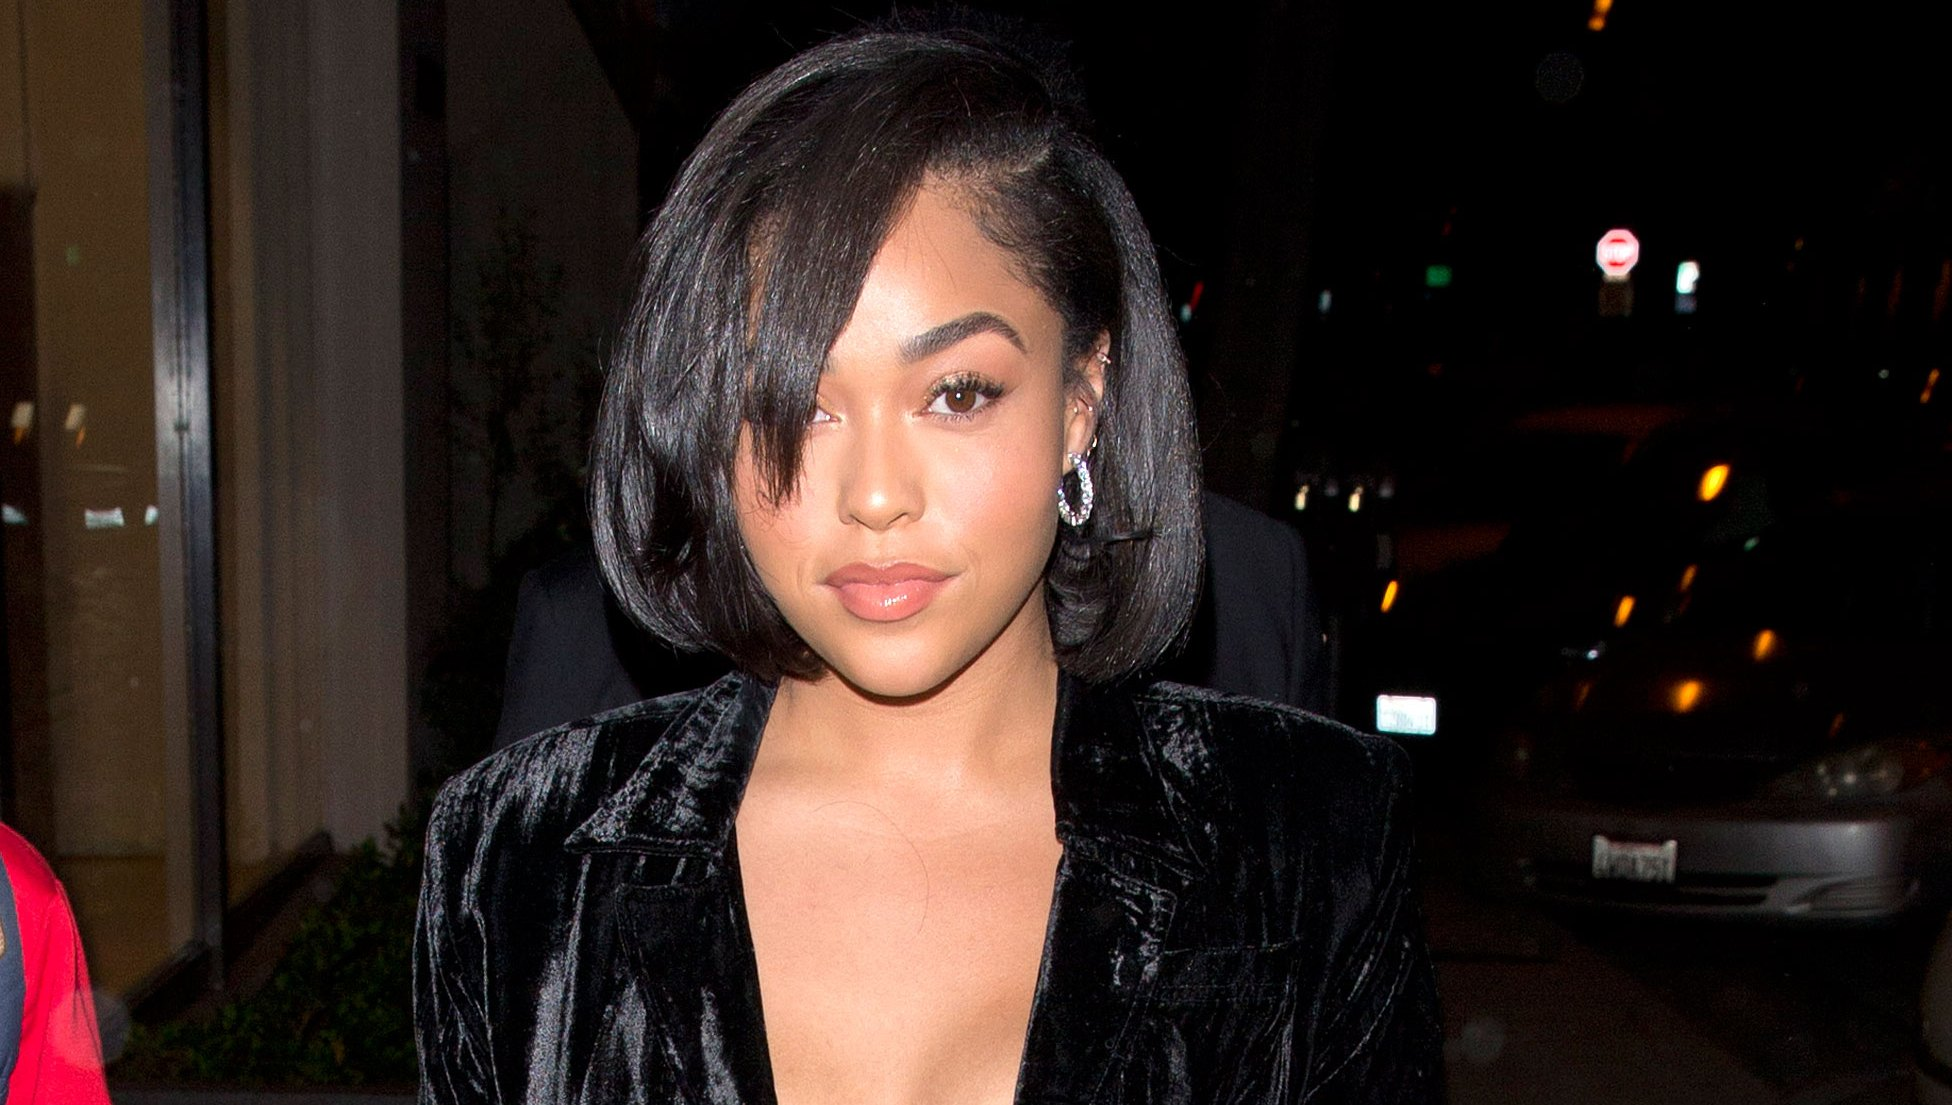 Jordyn Woods 'Walked in Confidently' to Post-Scandal Outing With Mom, Friends